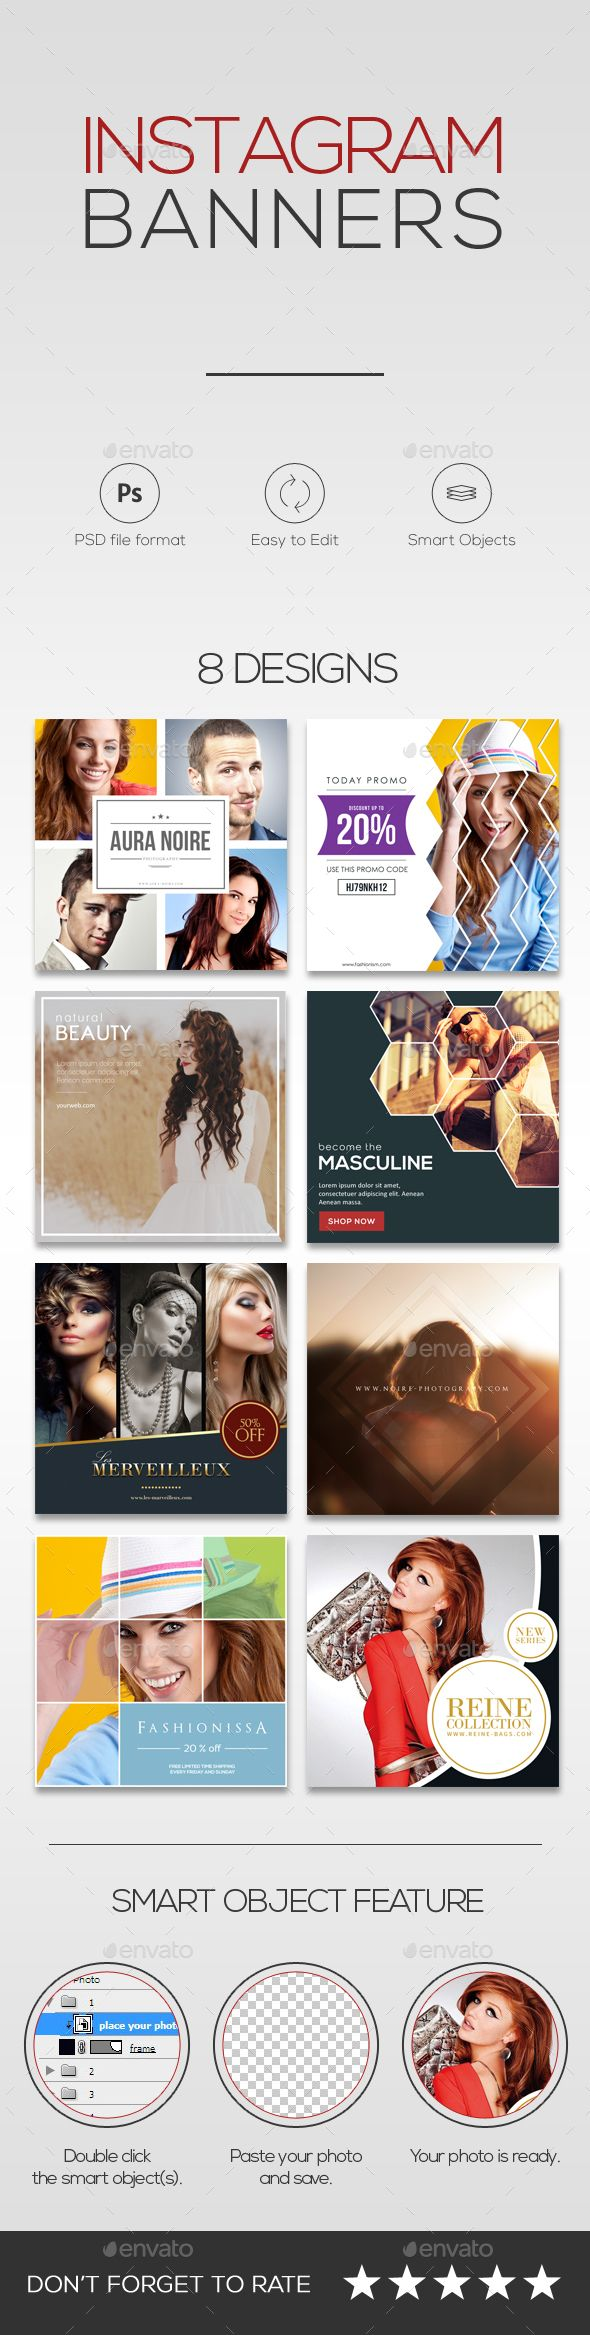 8 Promotional #Instagram #Banners - Miscellaneous #Social Media Download here: https://graphicriver.net/item/8-promotional-instagram-banners/15673784?ref=alena994